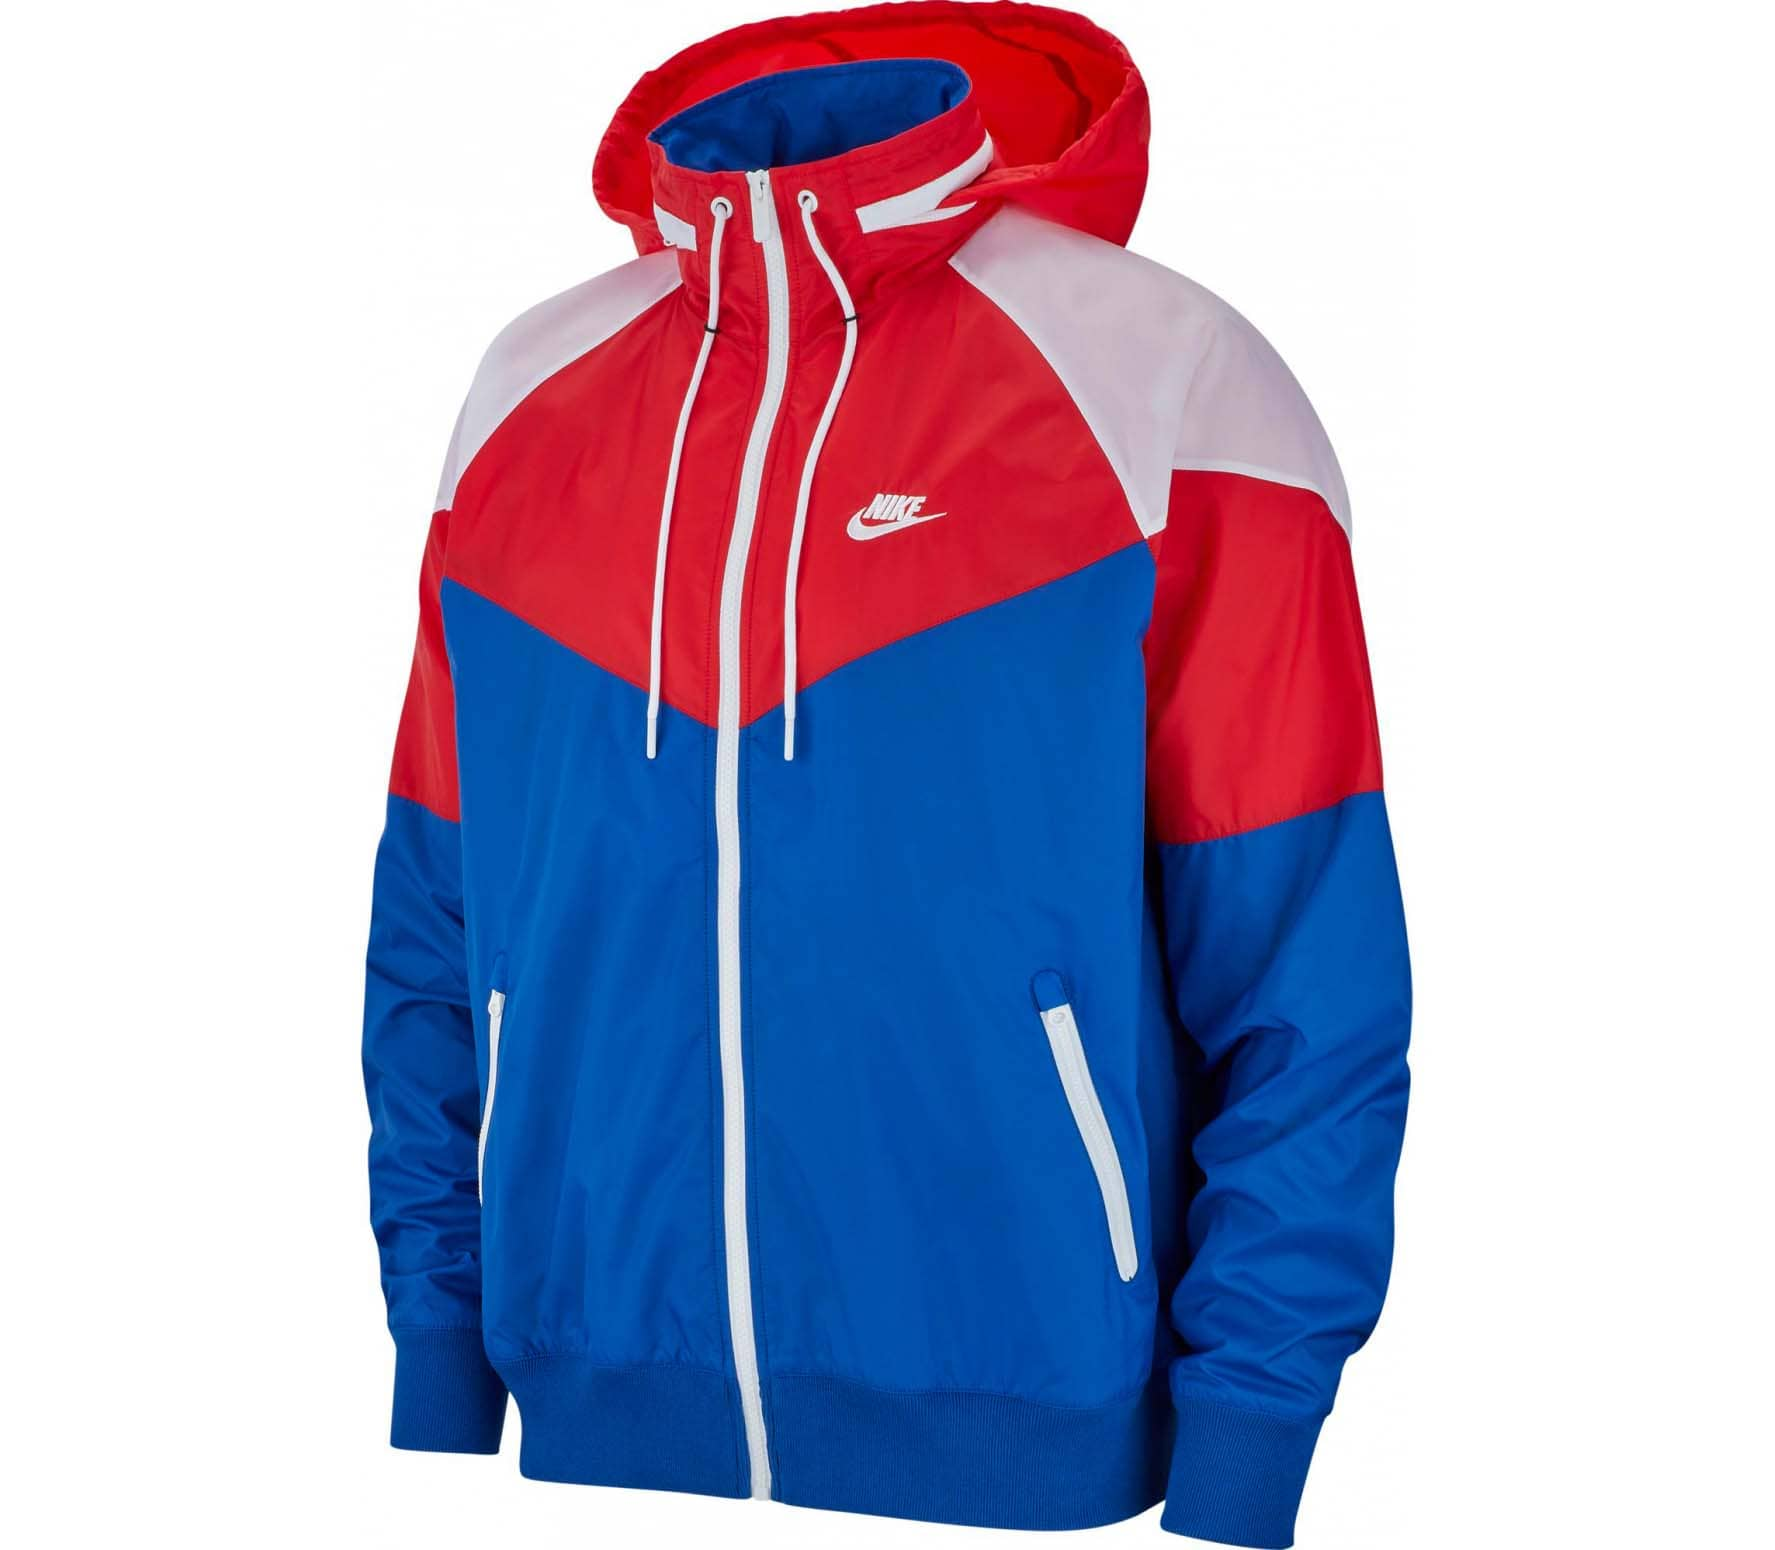 ab38c2ff93 Nike Sportswear - Windrunner men s jacket (red blue) - buy it at the ...